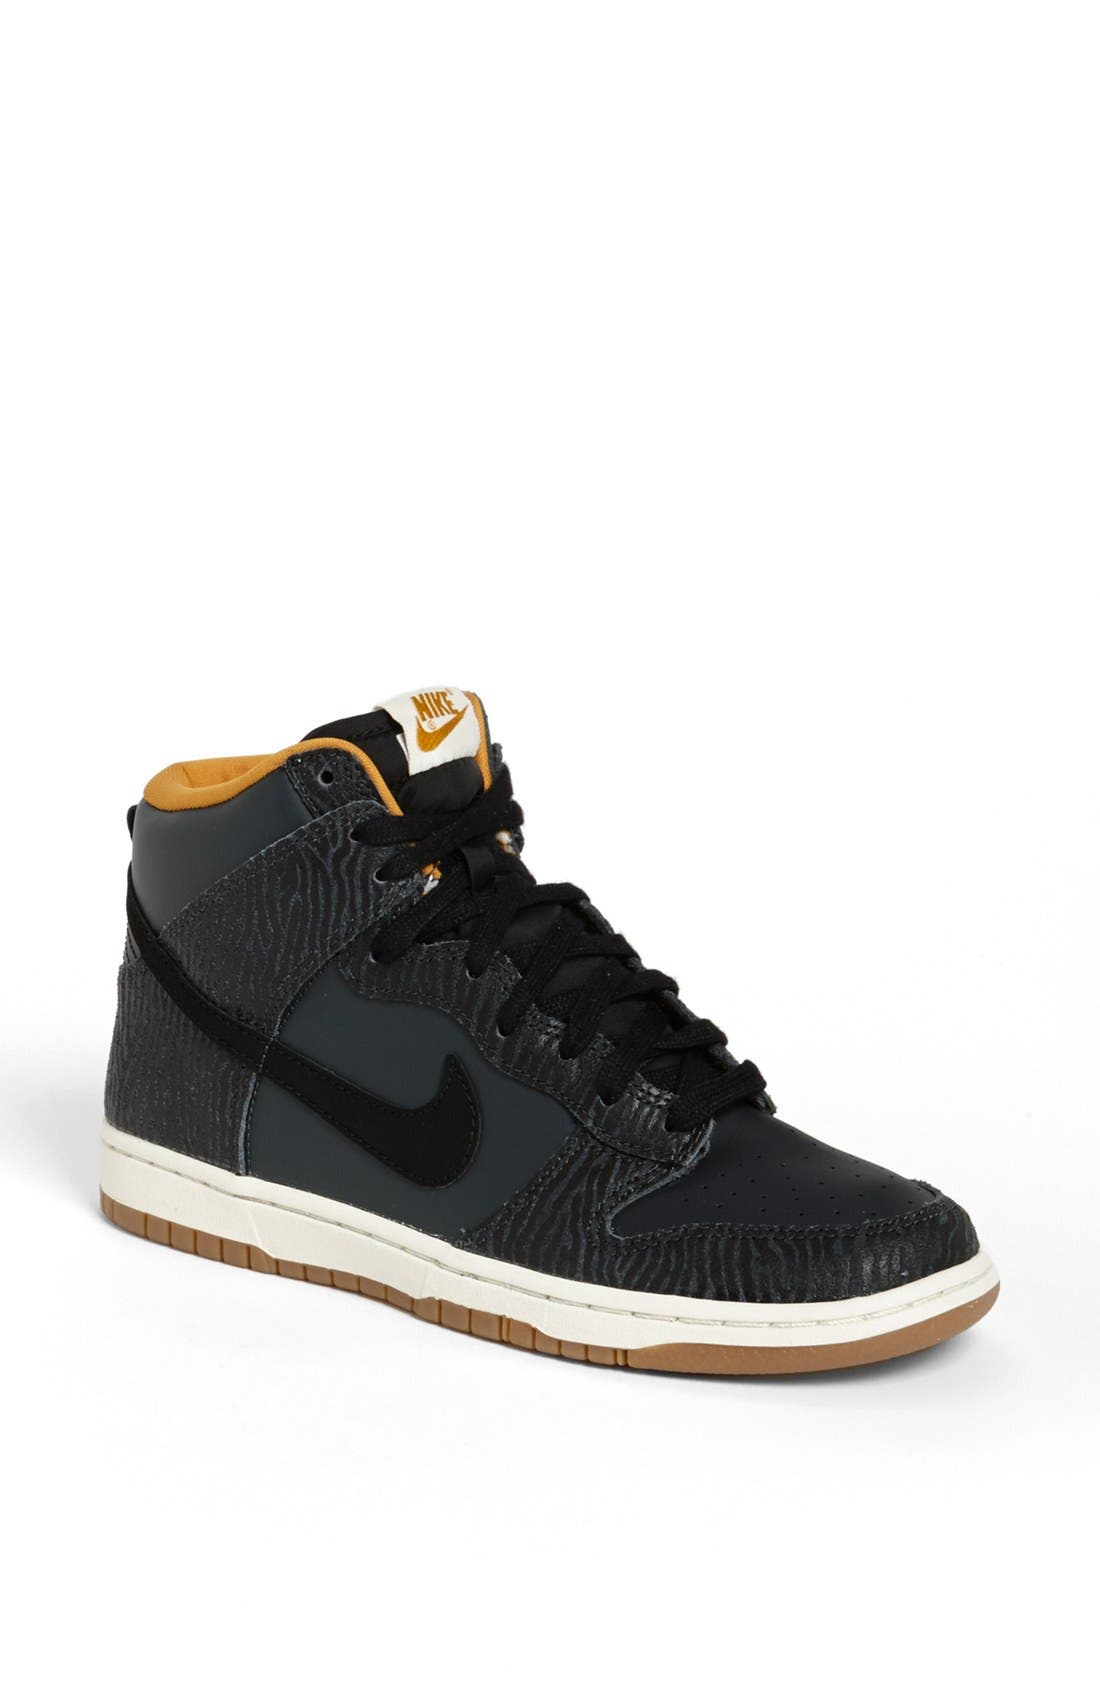 Main Image - Nike 'Dunk Hi - Skinny Print' High Top Basketball Sneaker